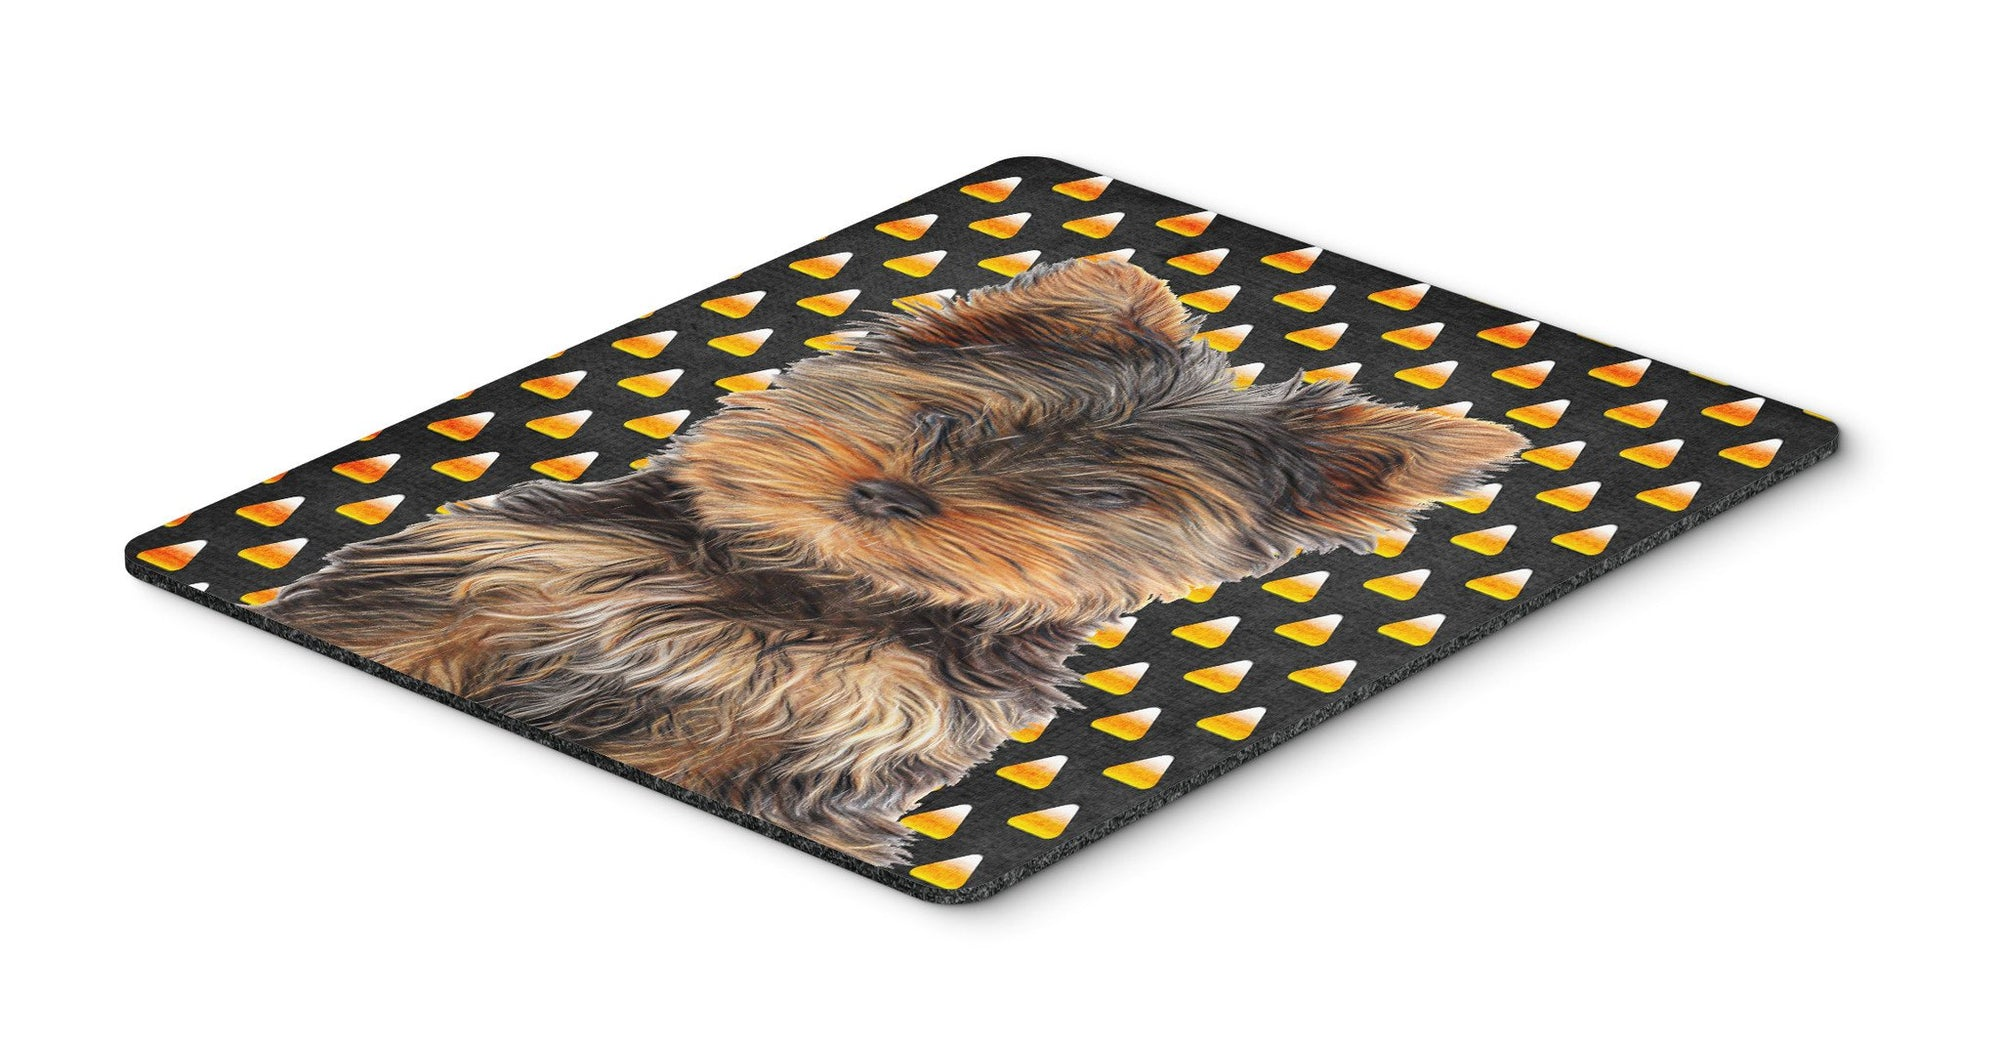 Buy this Candy Corn Halloween Yorkie Puppy / Yorkshire Terrier Mouse Pad, Hot Pad or Trivet KJ1216MP